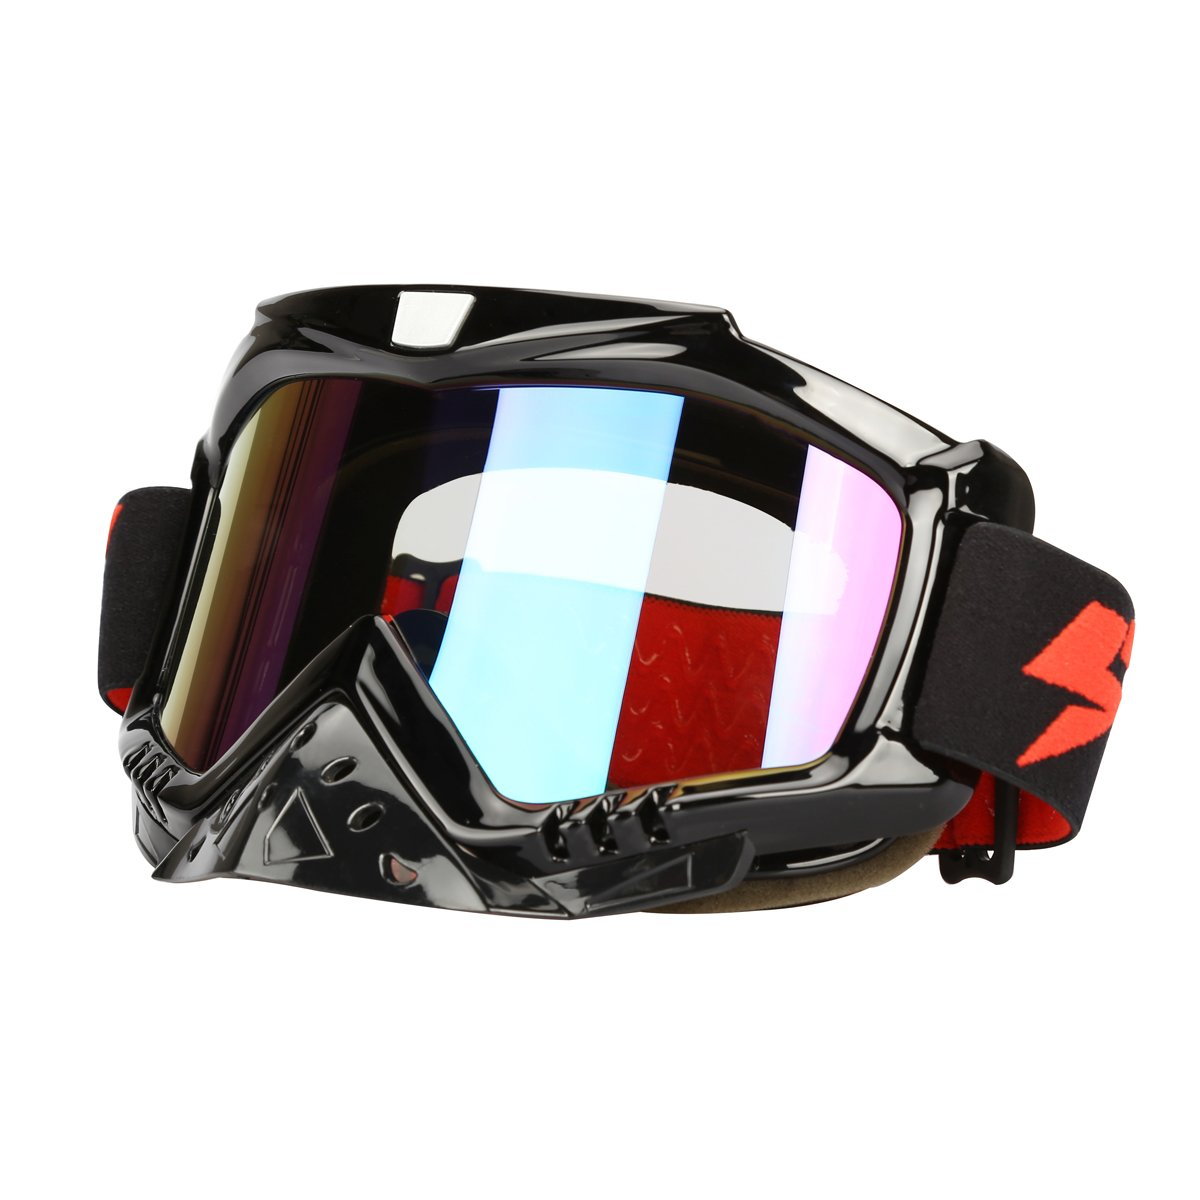 G4Free ATV Goggles Dirt Bike Off Road Screen Filter Motocross Motorcycle Motorbike Safety Glasses Anti UV Anti-Scratch Dustproof Windproof Cycling Racing Riding Skiing for Men /& Women /& Adults /& Youth